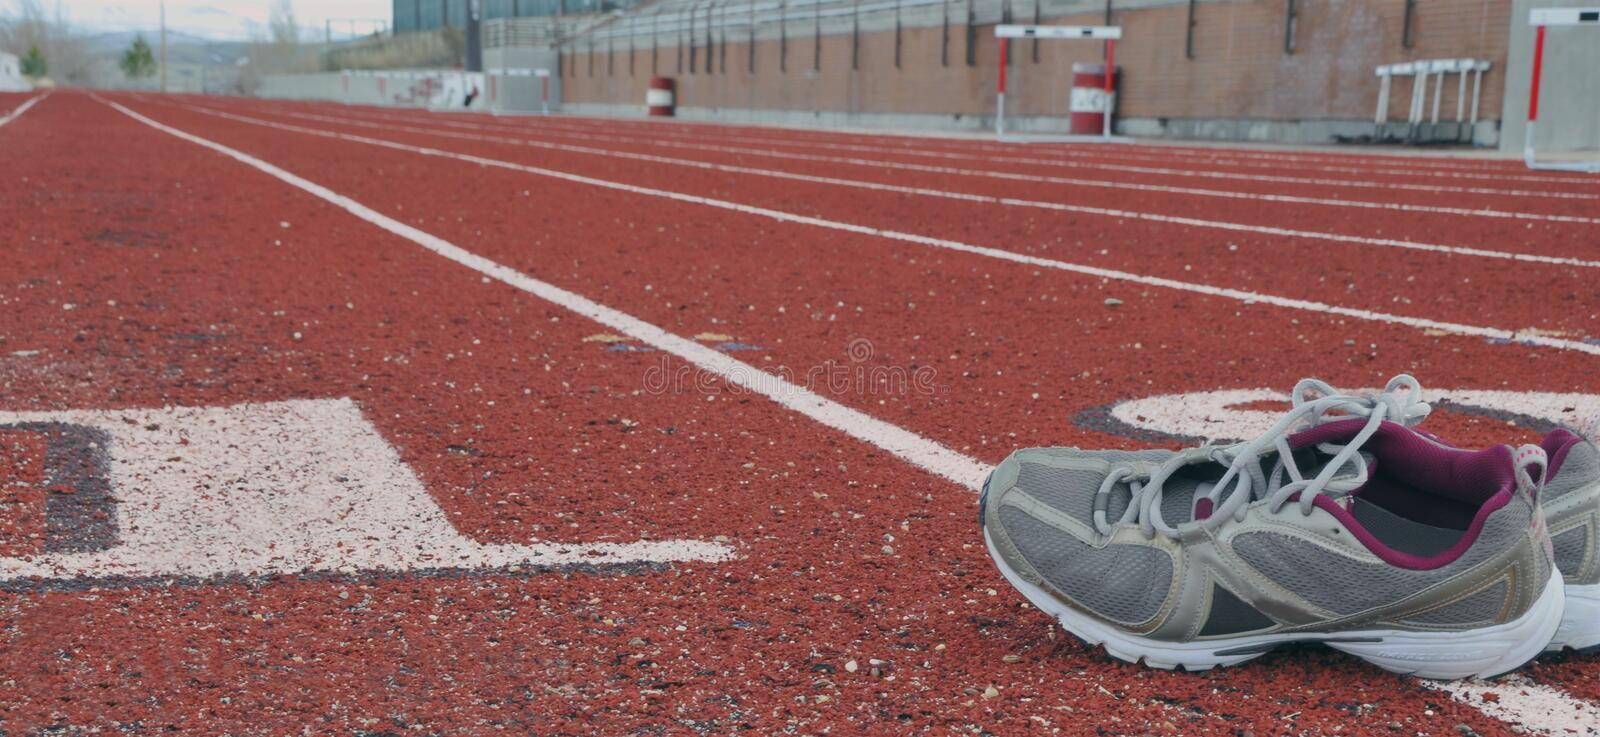 Track&shoes. Track with running shoes in lane, ready for practice stock photos